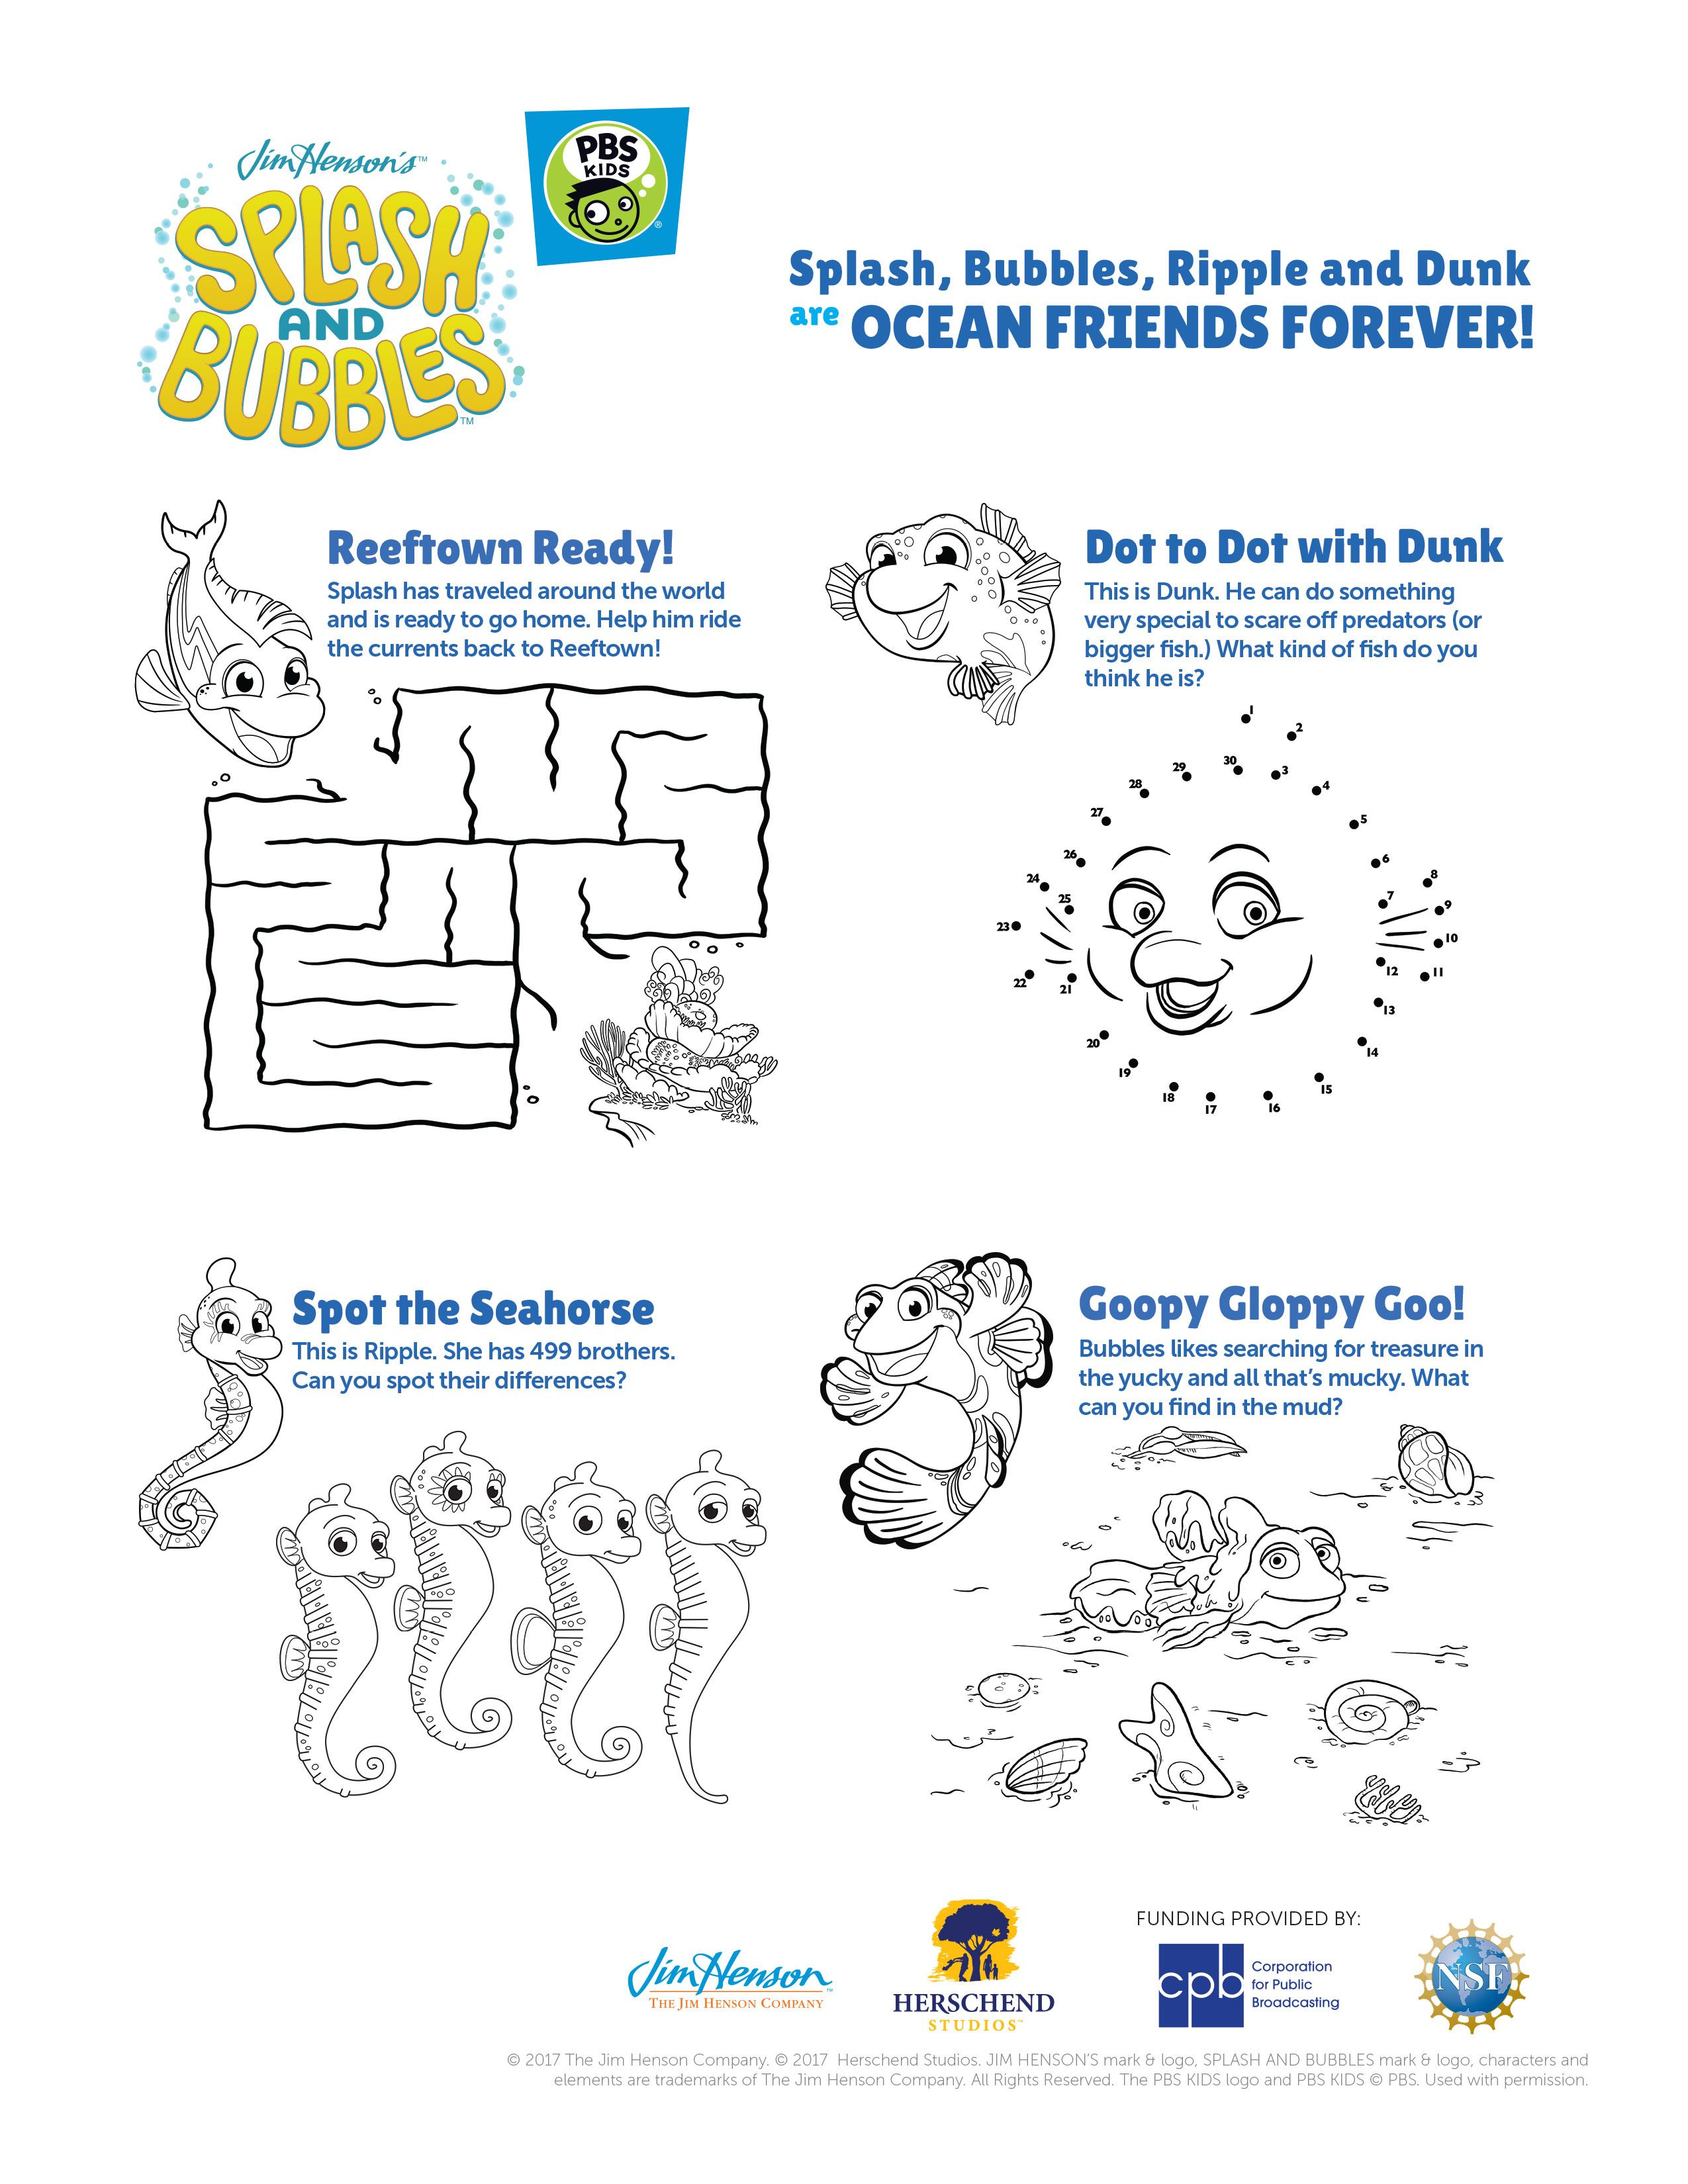 celebrate world oceans month with splash and bubbles